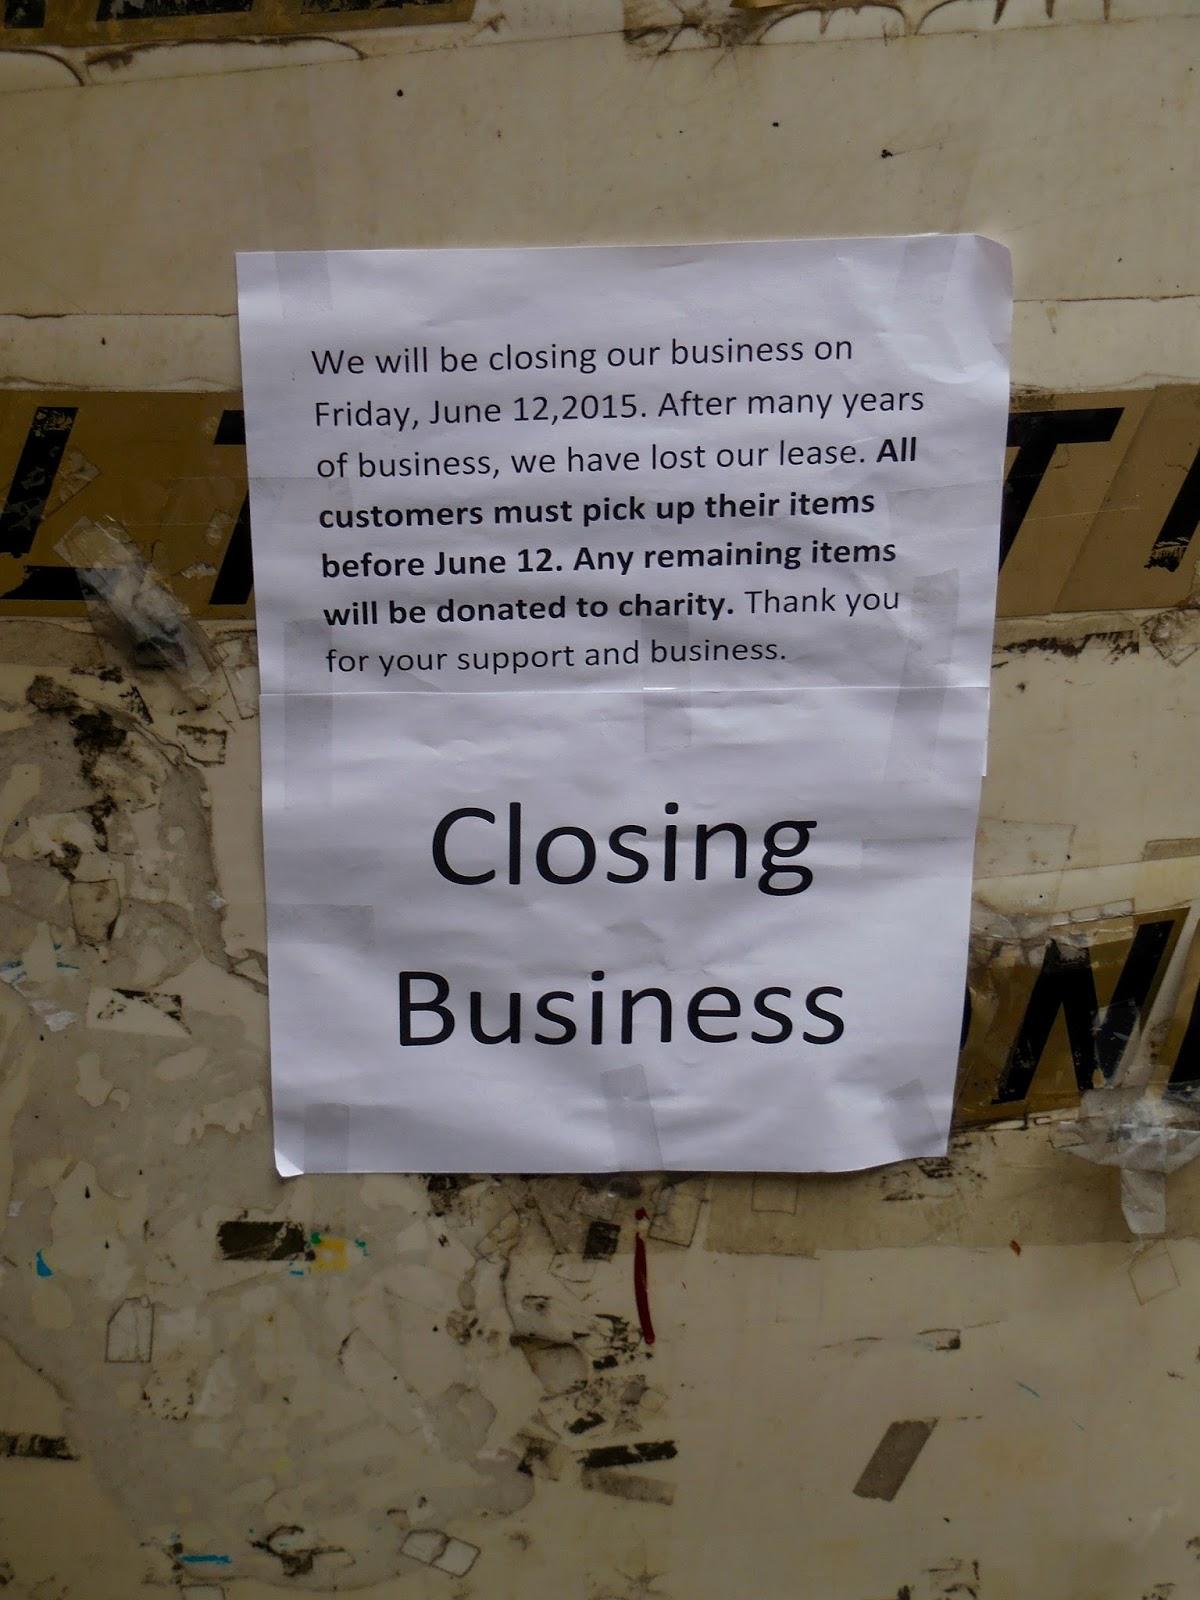 Jeremiahs vanishing new york benny louie chinese laundry reader chris bandini sends in the sad news about benny louie chinese laundry on 13th street near university the sign outside says theyre closing on june solutioingenieria Gallery